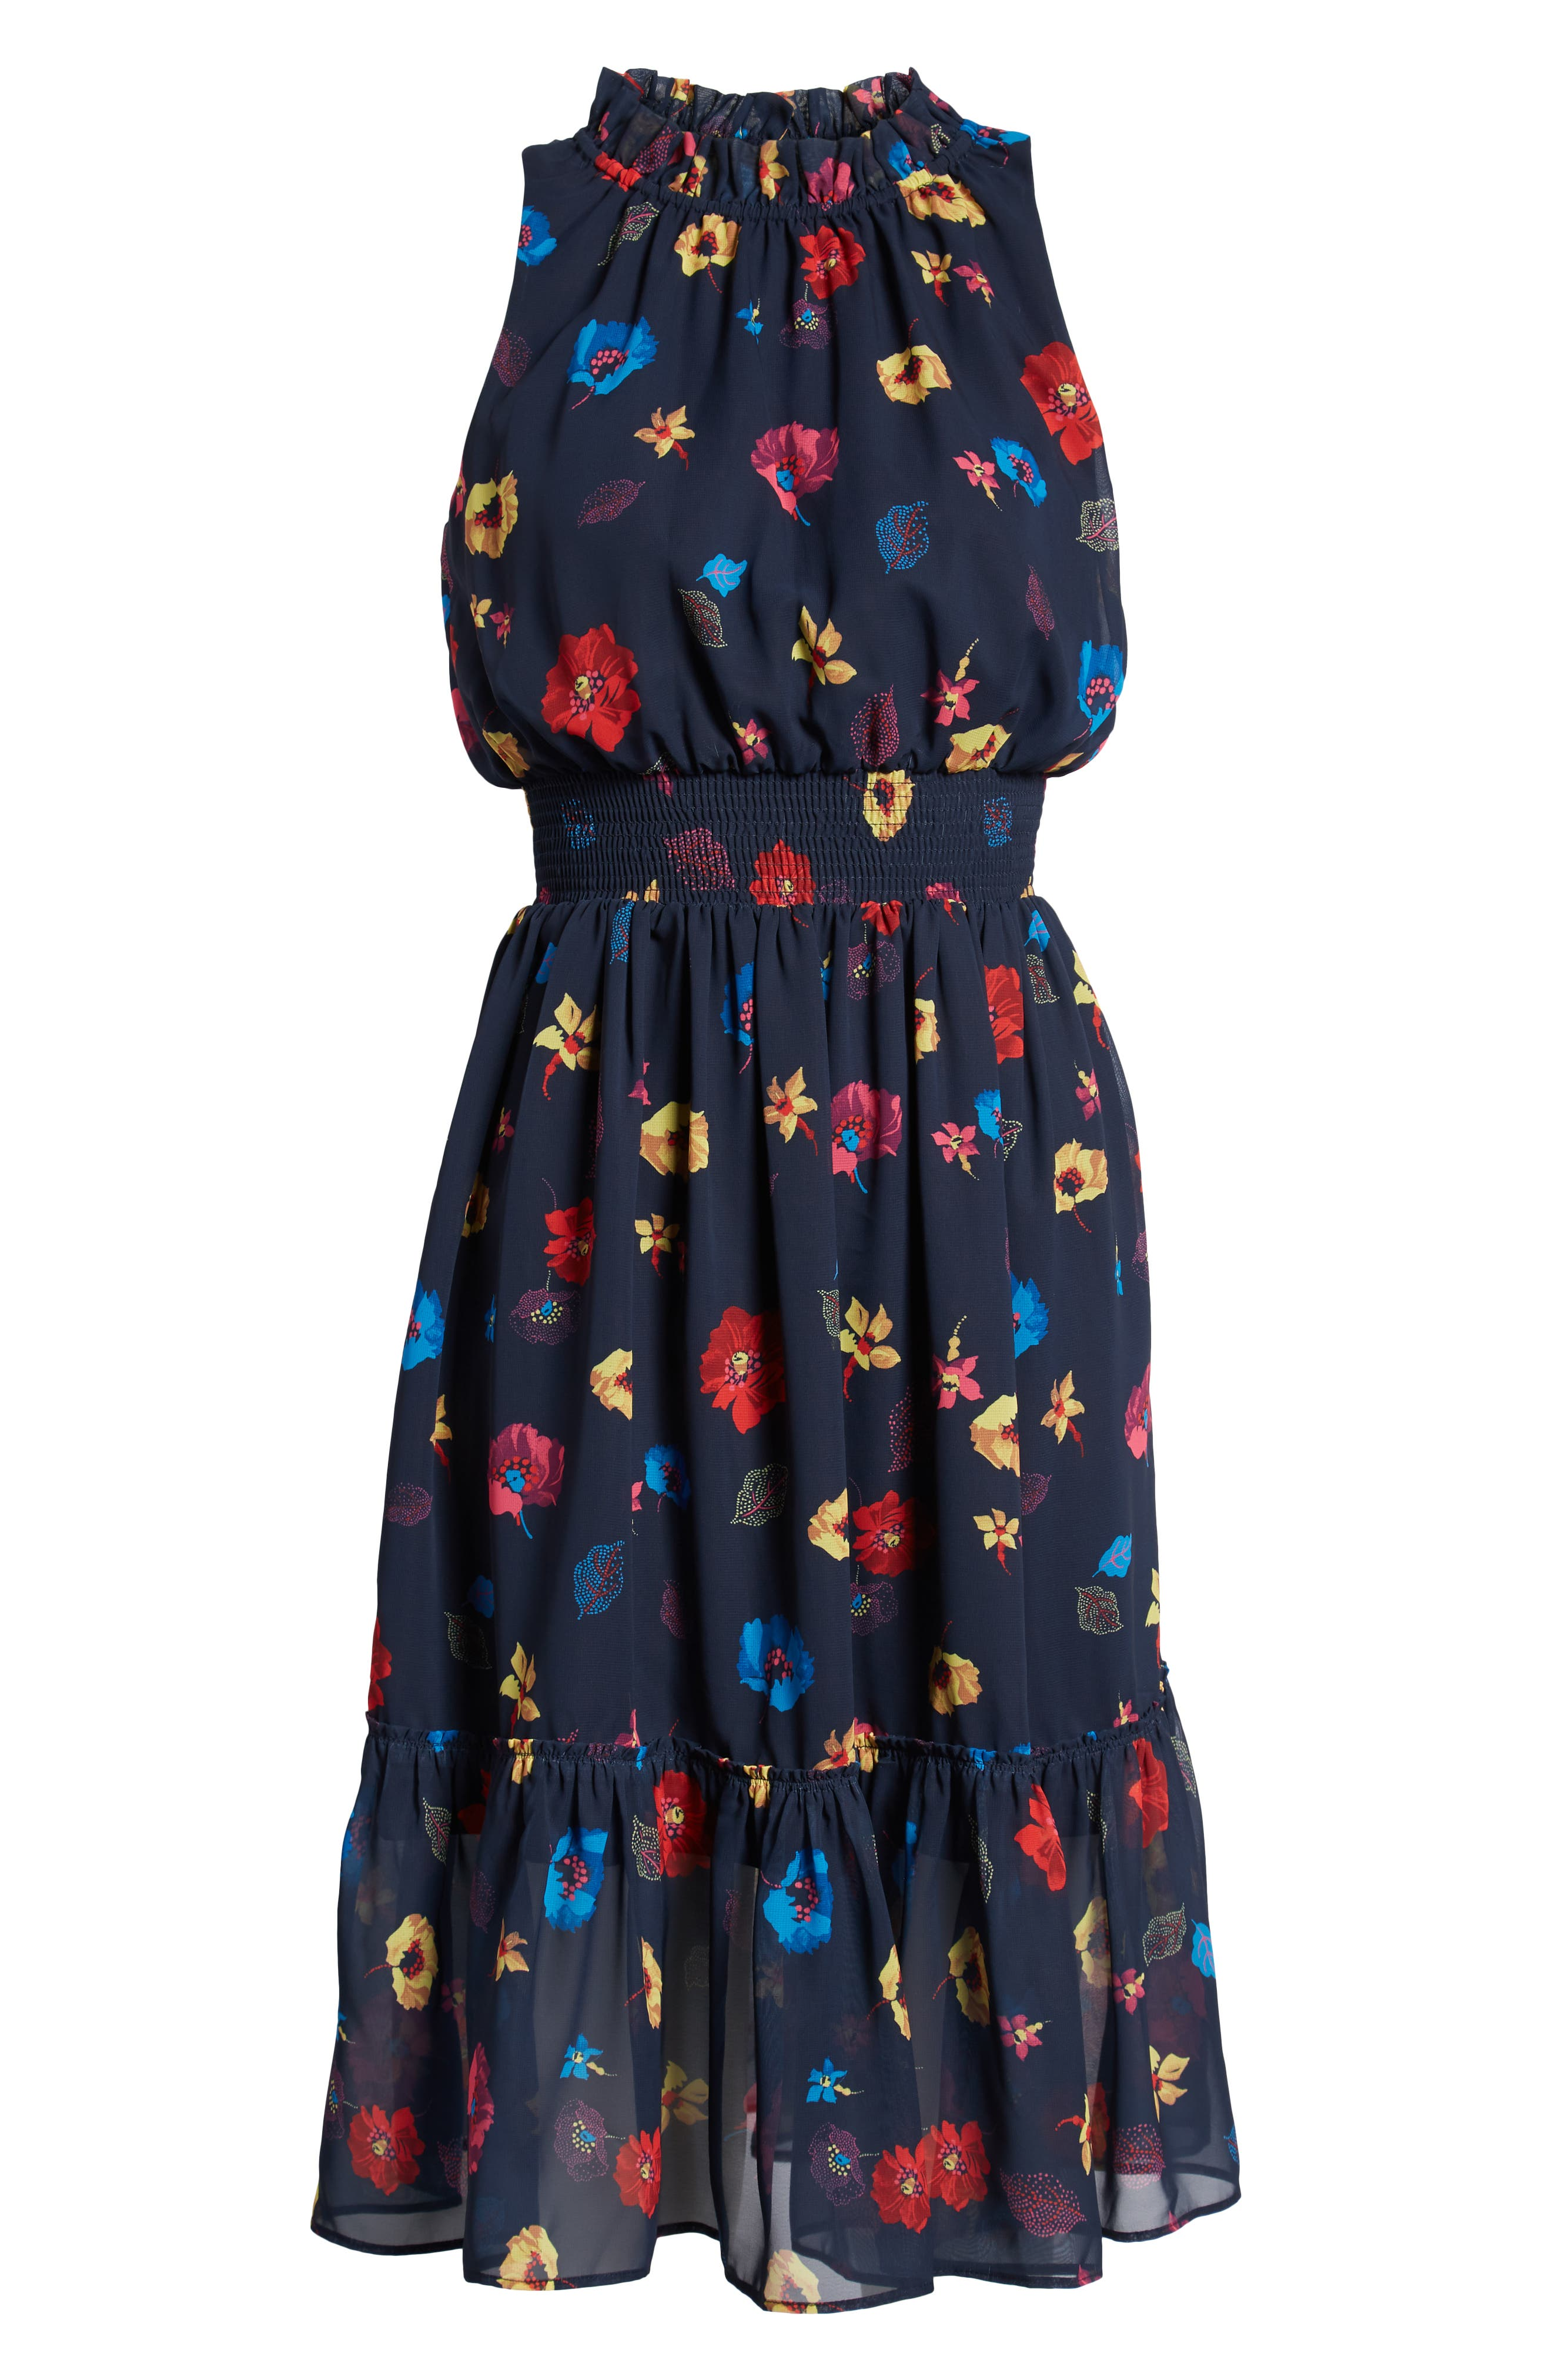 Floral Chiffon Fit & Flare Dress,                             Alternate thumbnail 7, color,                             NAVY POP FLOWER